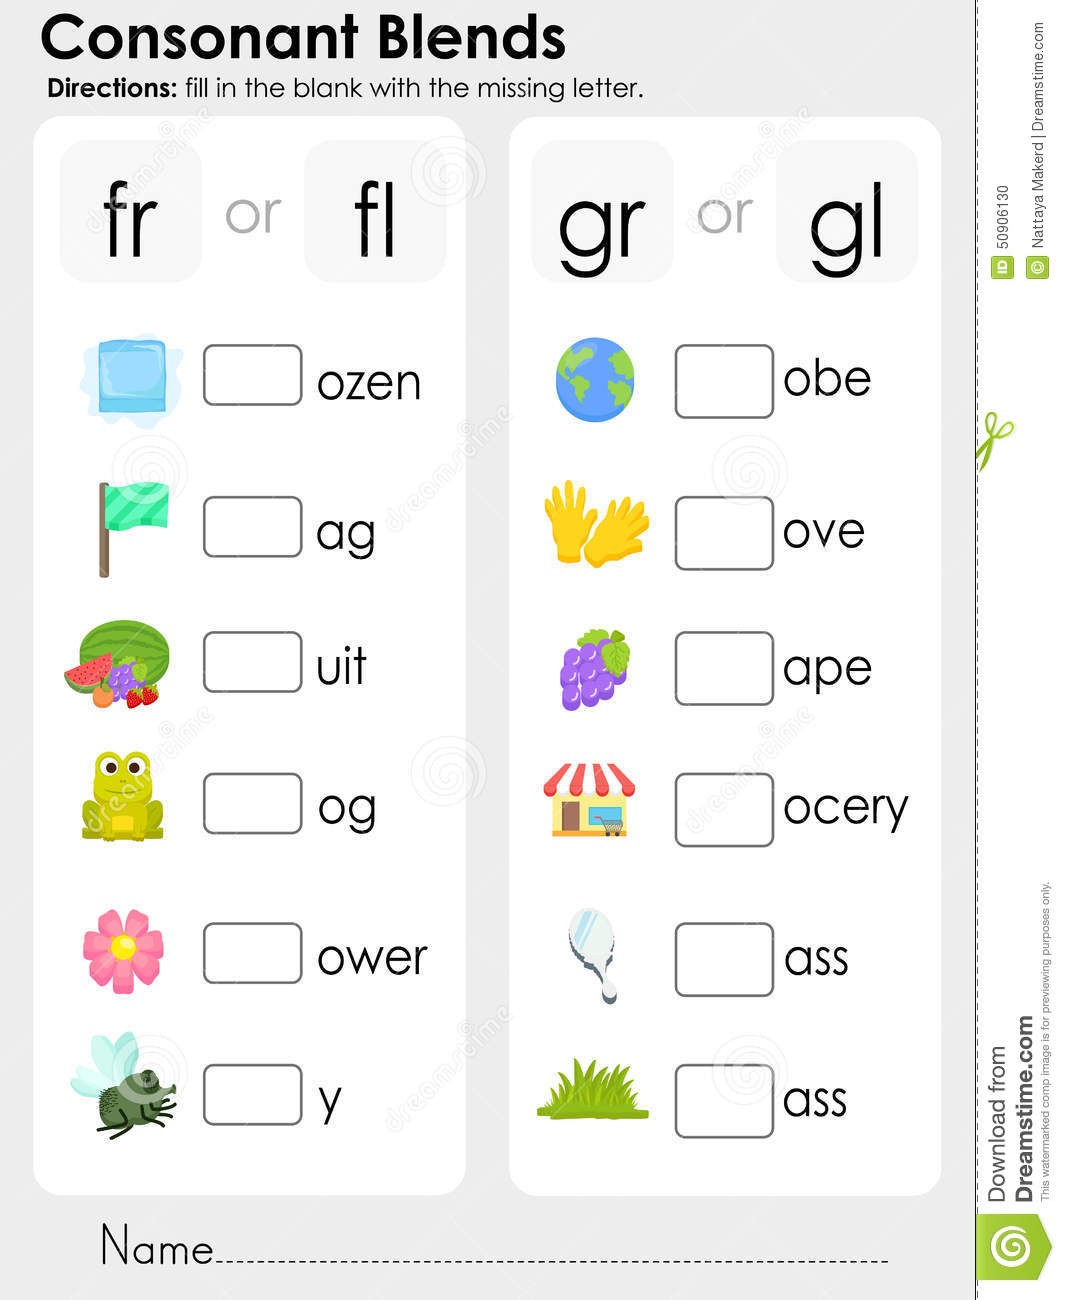 Worksheets Consonant Blend Worksheets consonant blends missing letter worksheet for education stock education